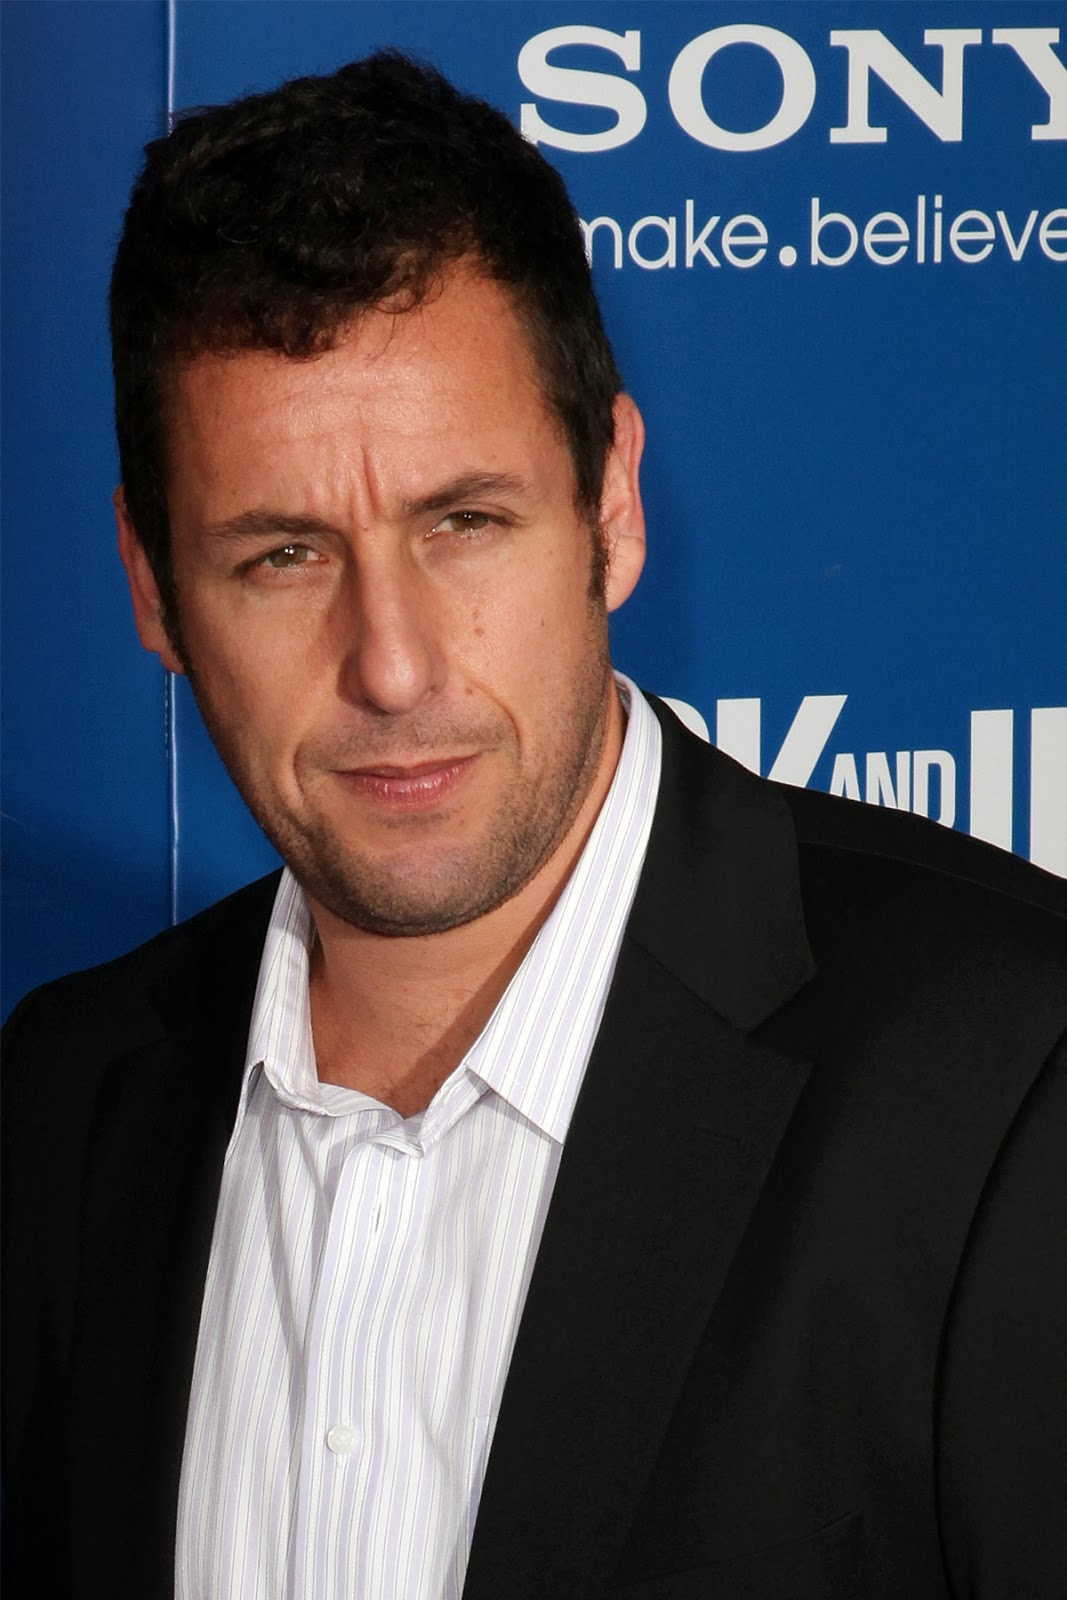 Bollywood Wallpapers With Quotes Adam Sandler Wallpapers Hd Wallpapers High Definition